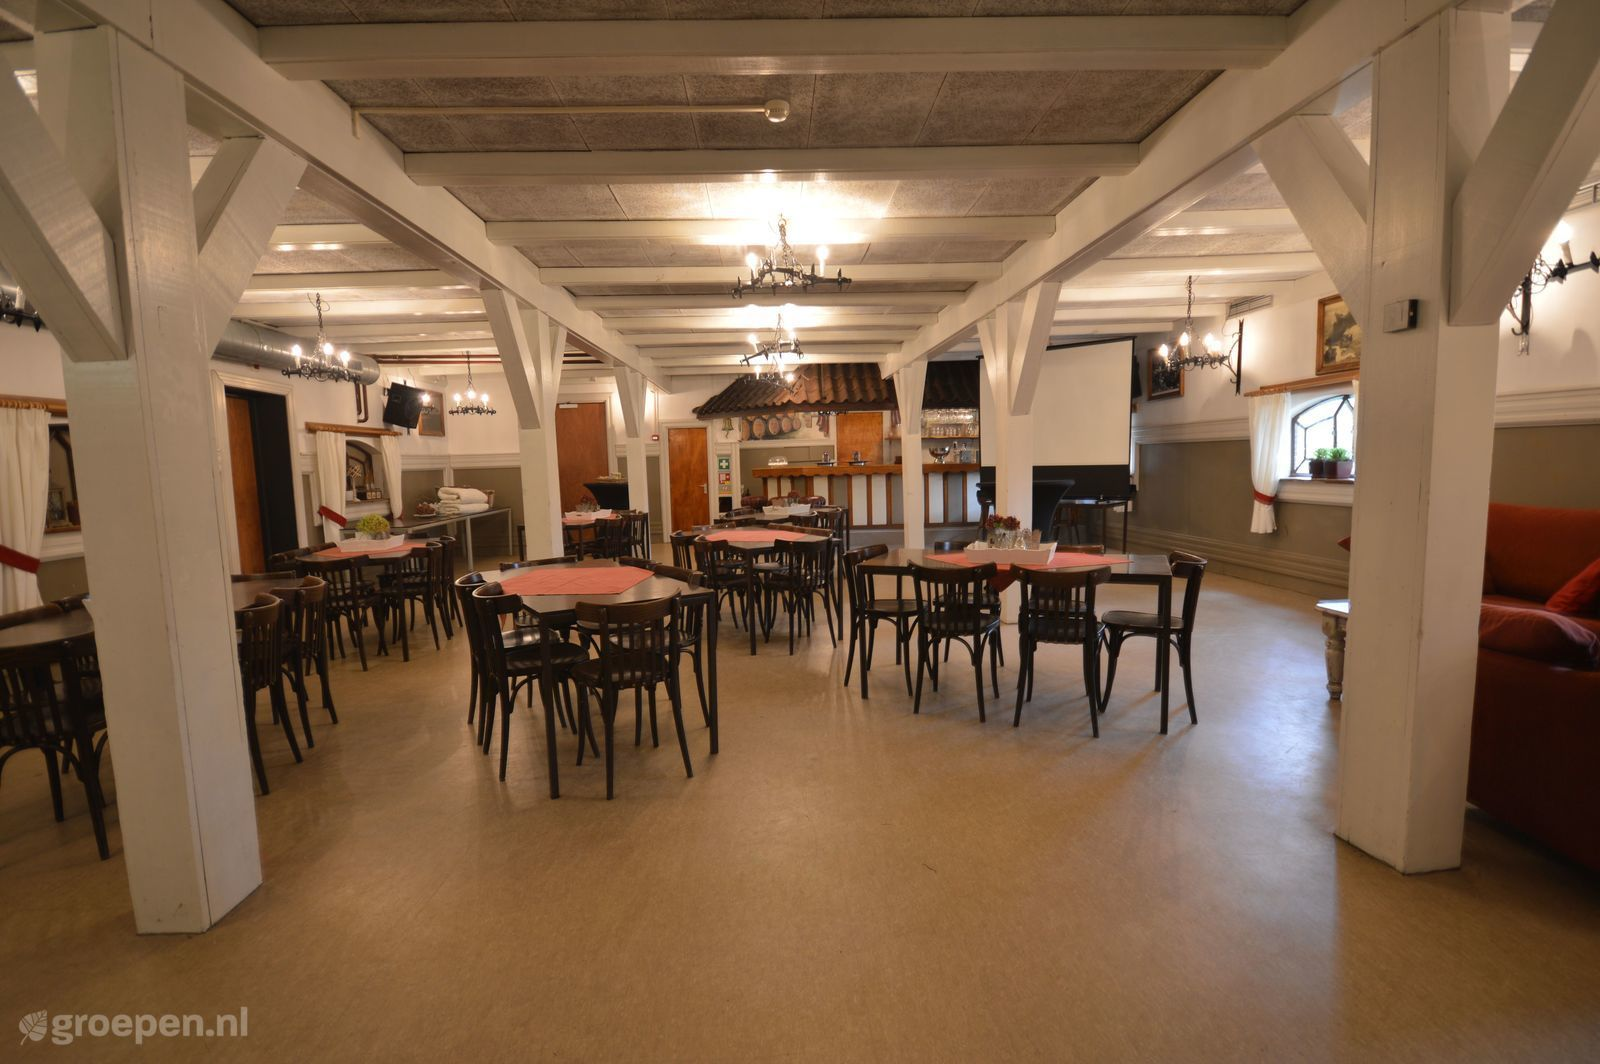 Group accommodation Bodegraven